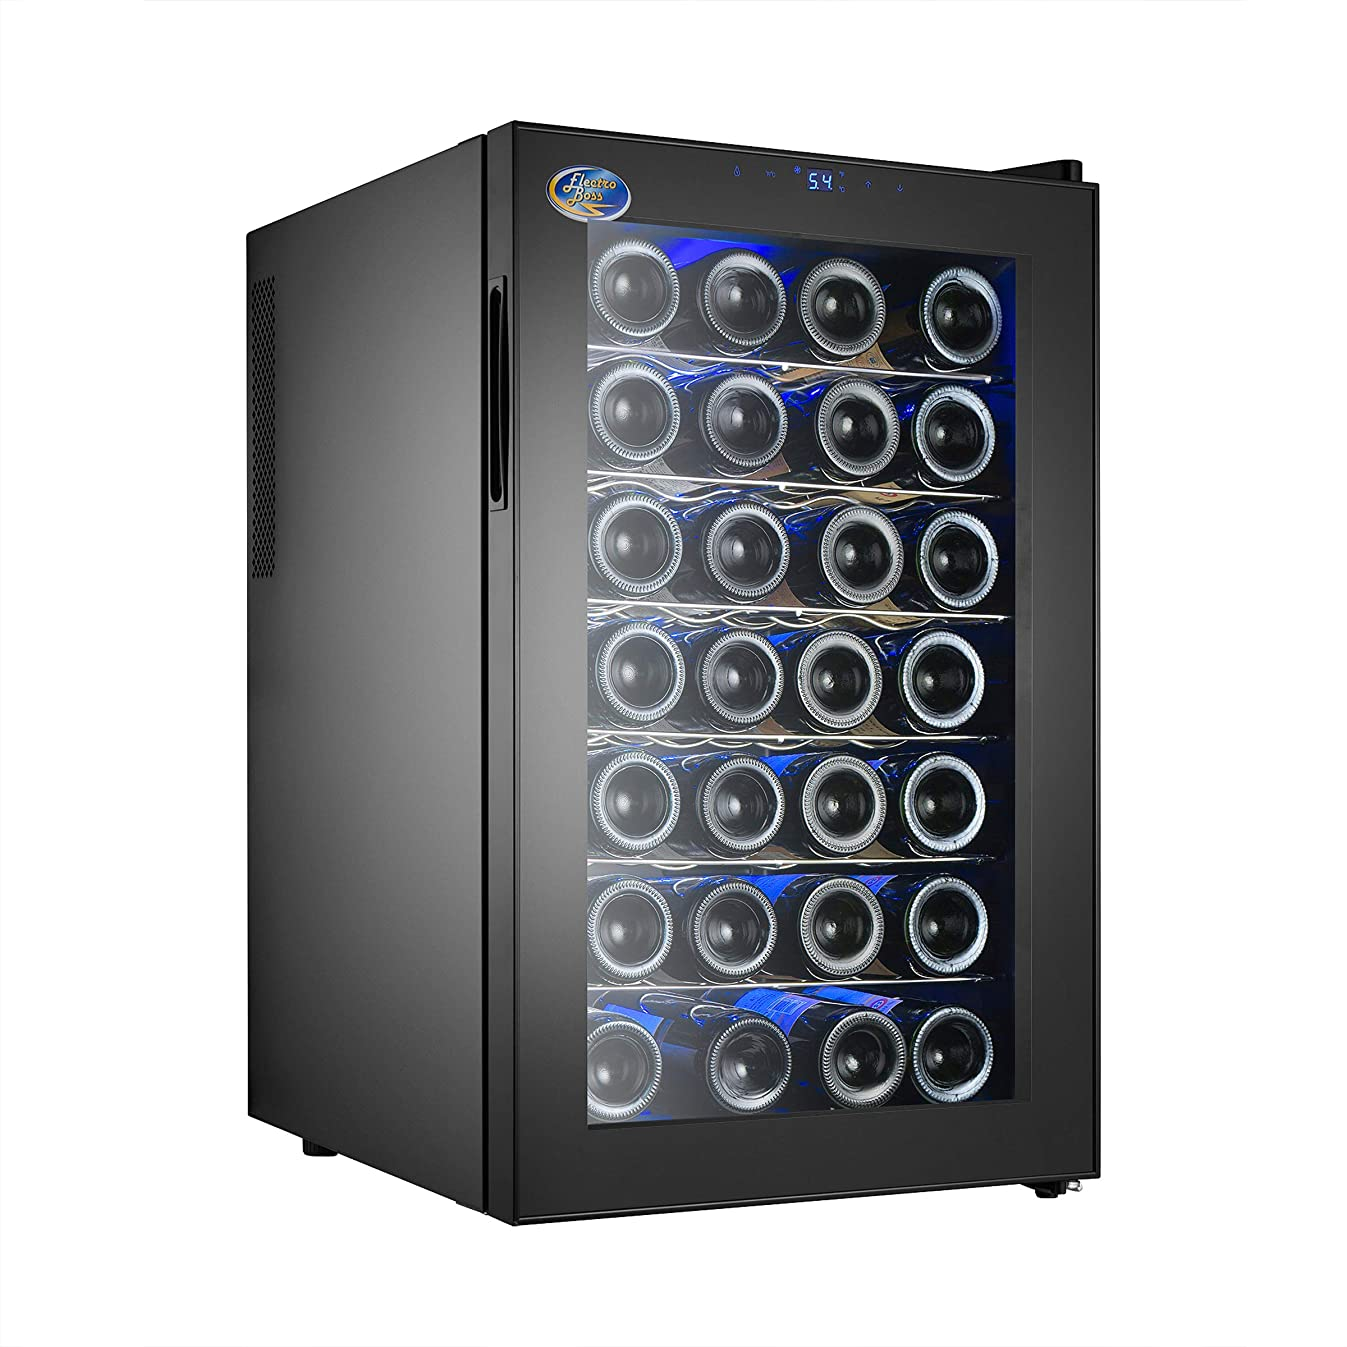 Electro Boss Black 28 Bottle Wine Cooler Thermoelectric Fridge to Chill Red or White, Digital Temperature Display, Reversible Glass Door, Model #5325,